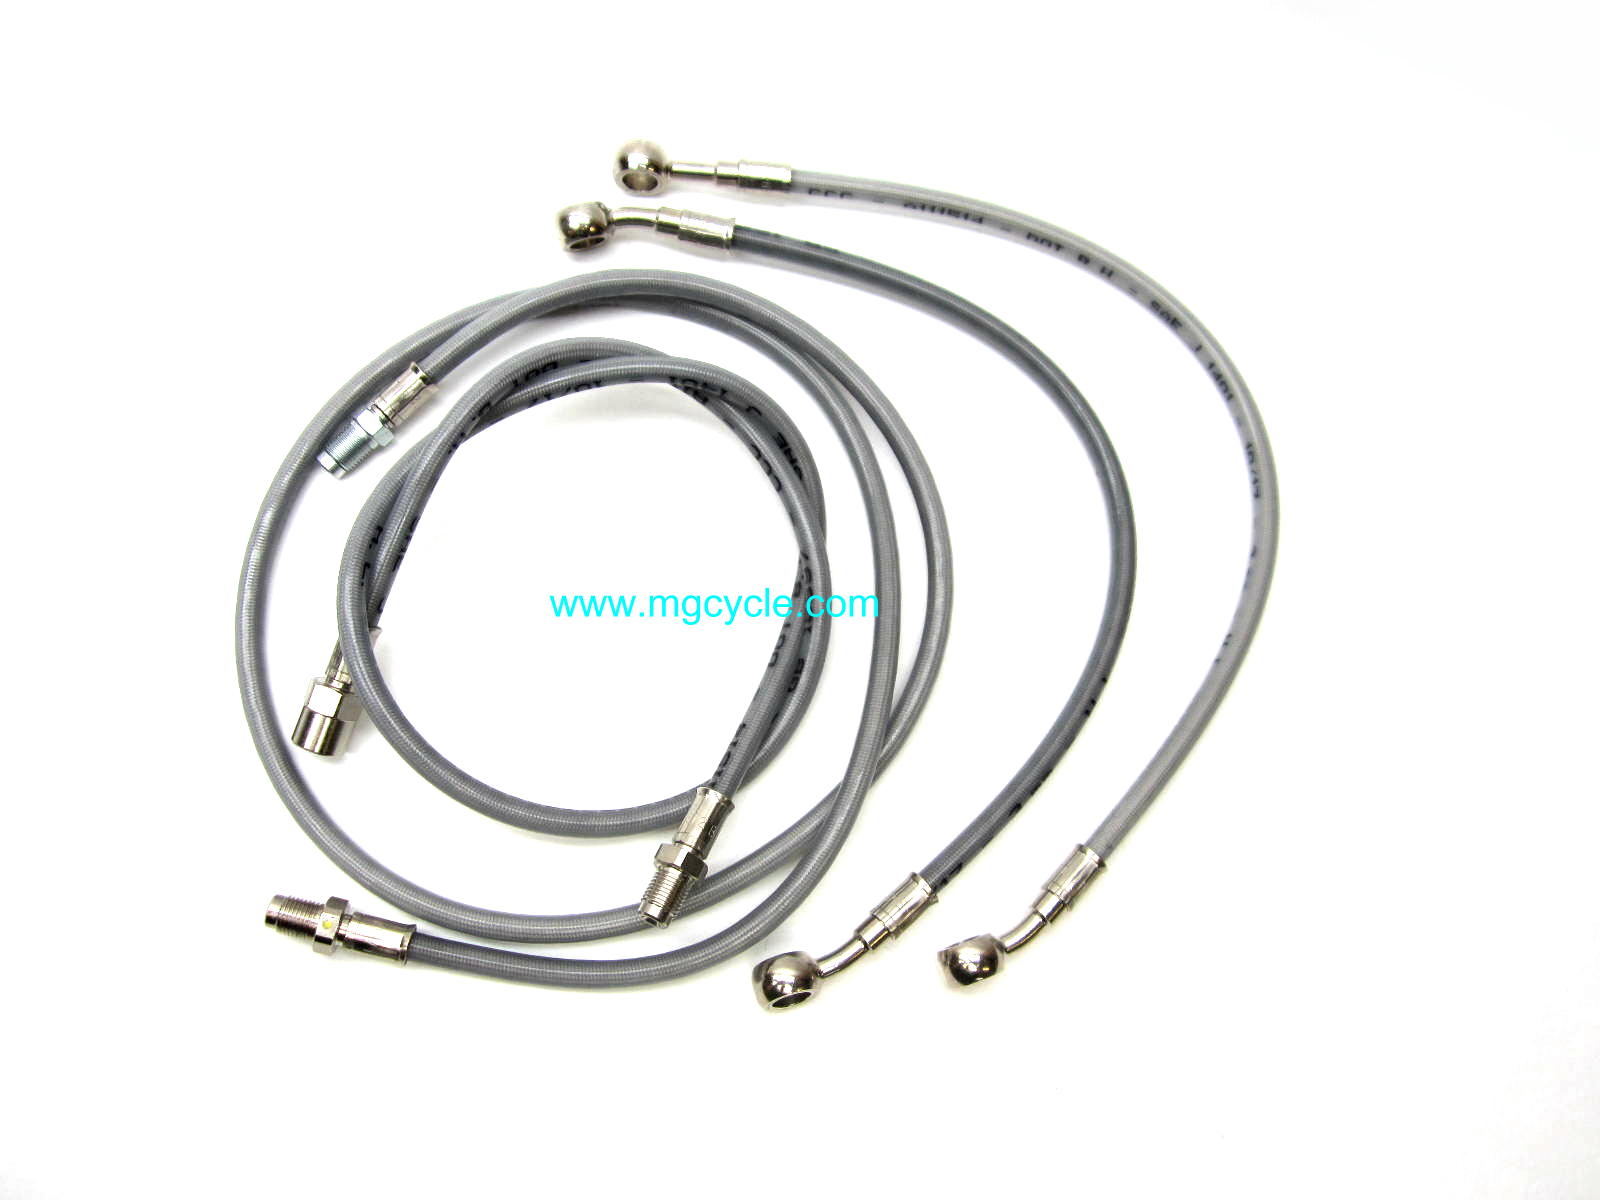 Stainless brake line kit for California III